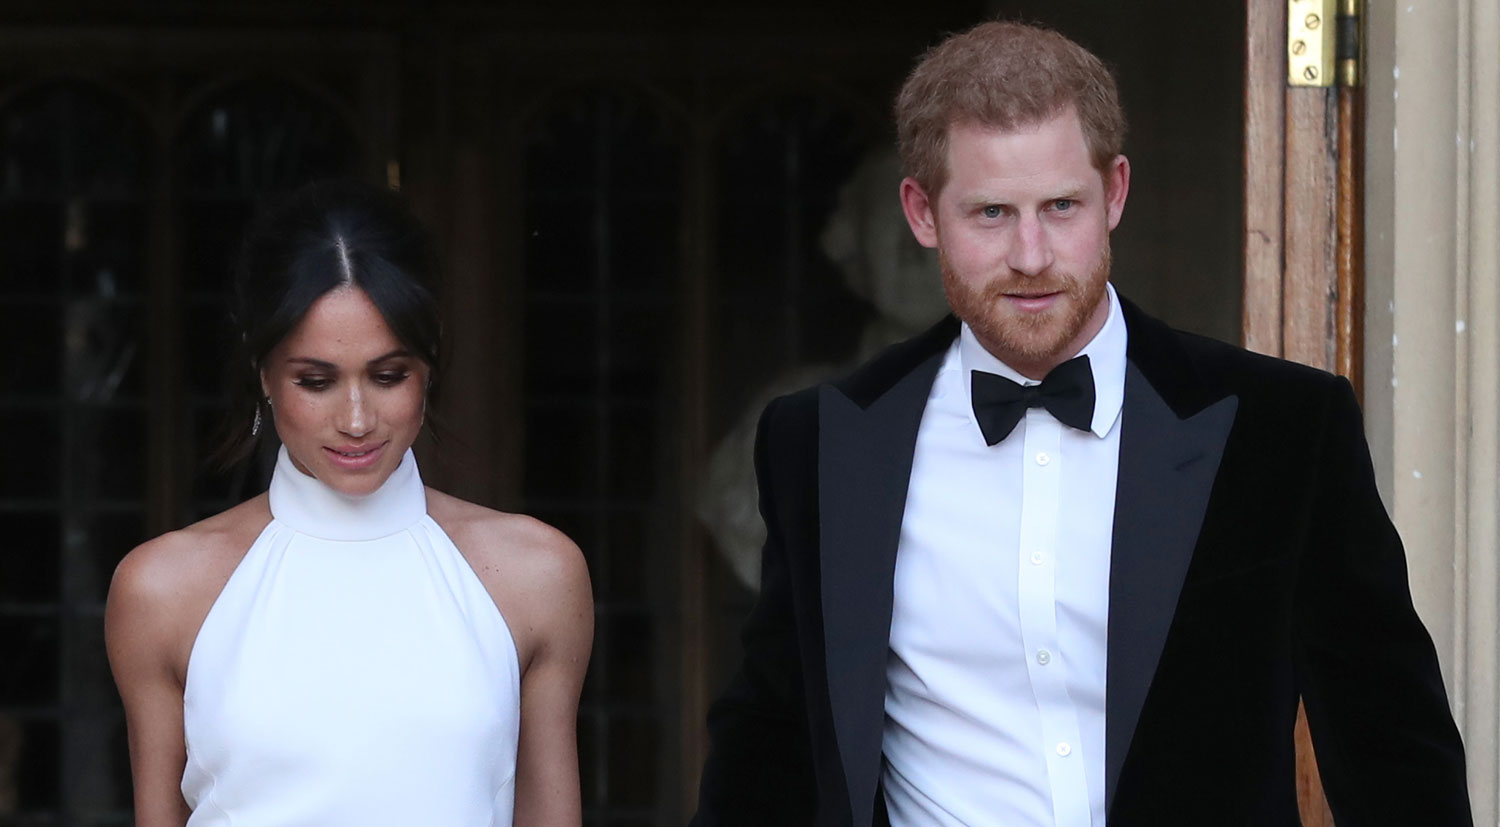 Meghan markle wows in second wedding dress alongside for 2nd wedding dress for reception